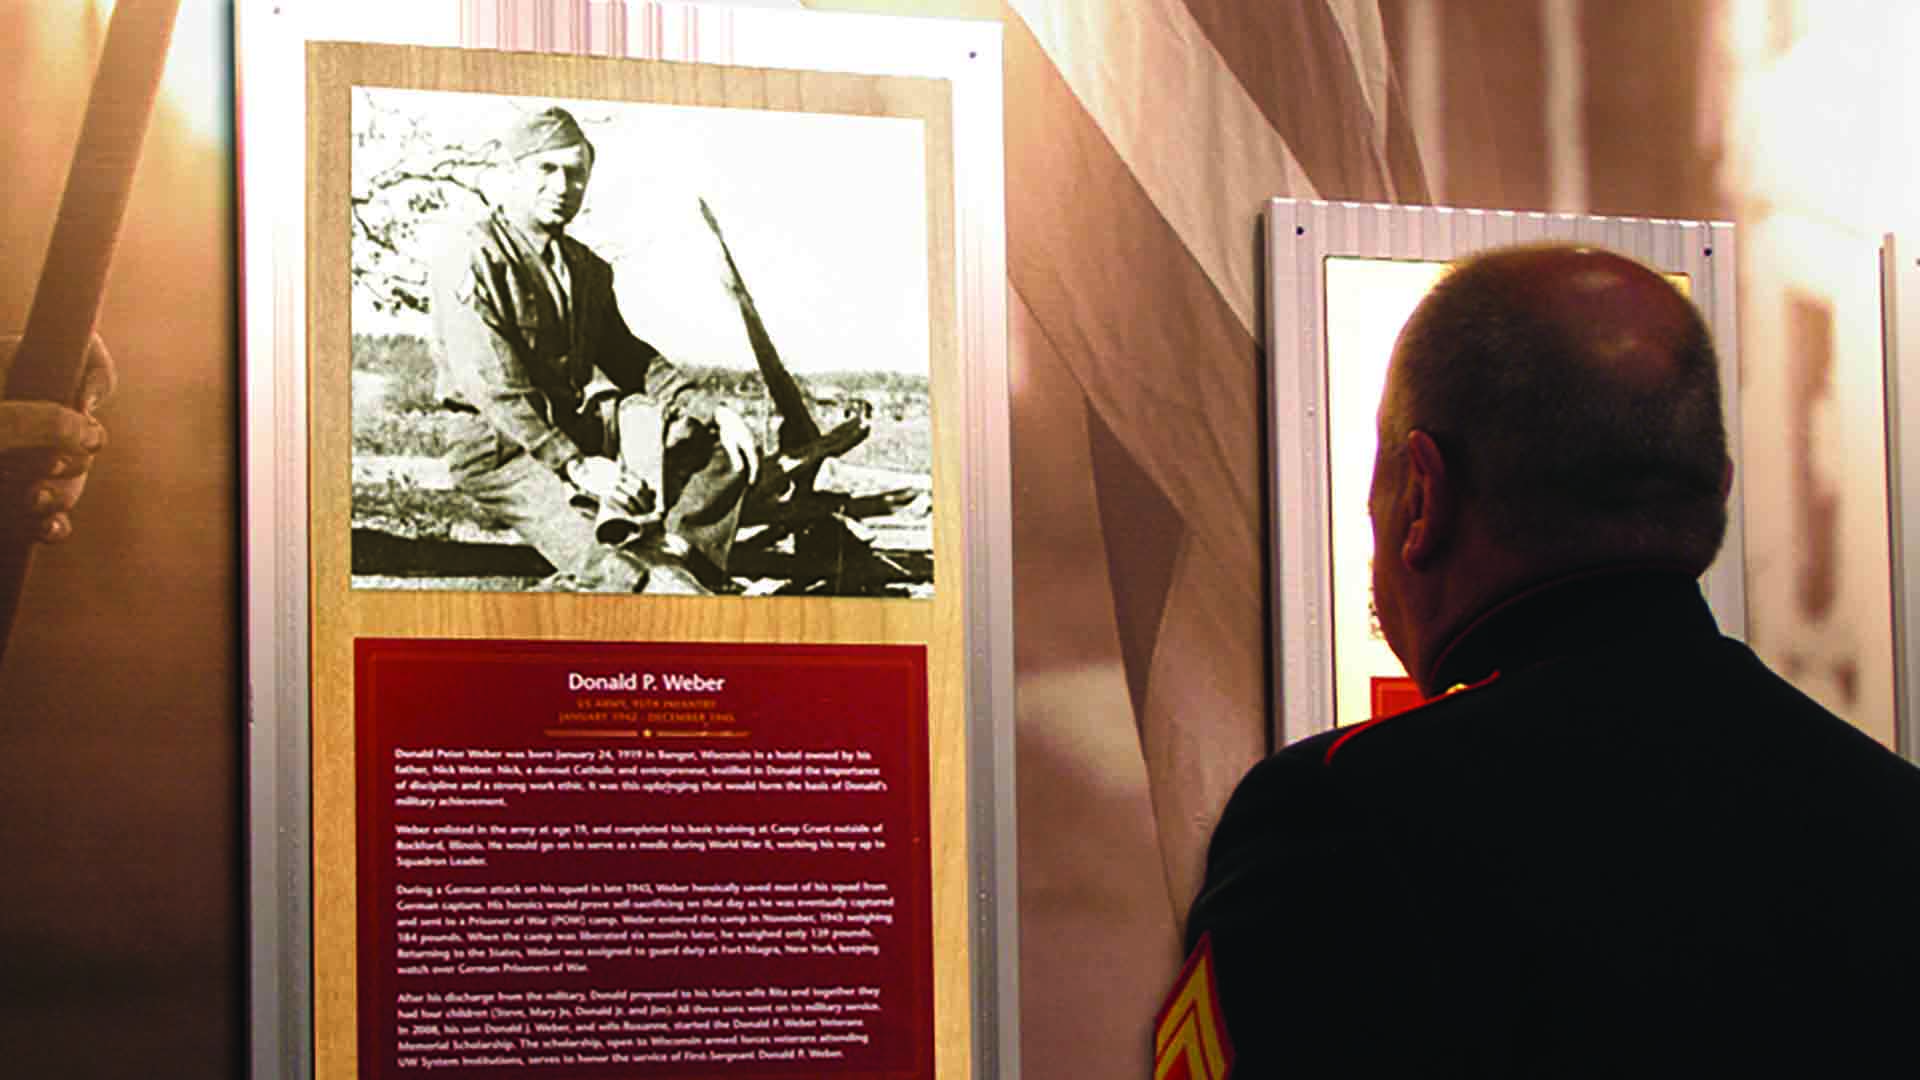 Man in military outfit looking at framed photographs of military men.